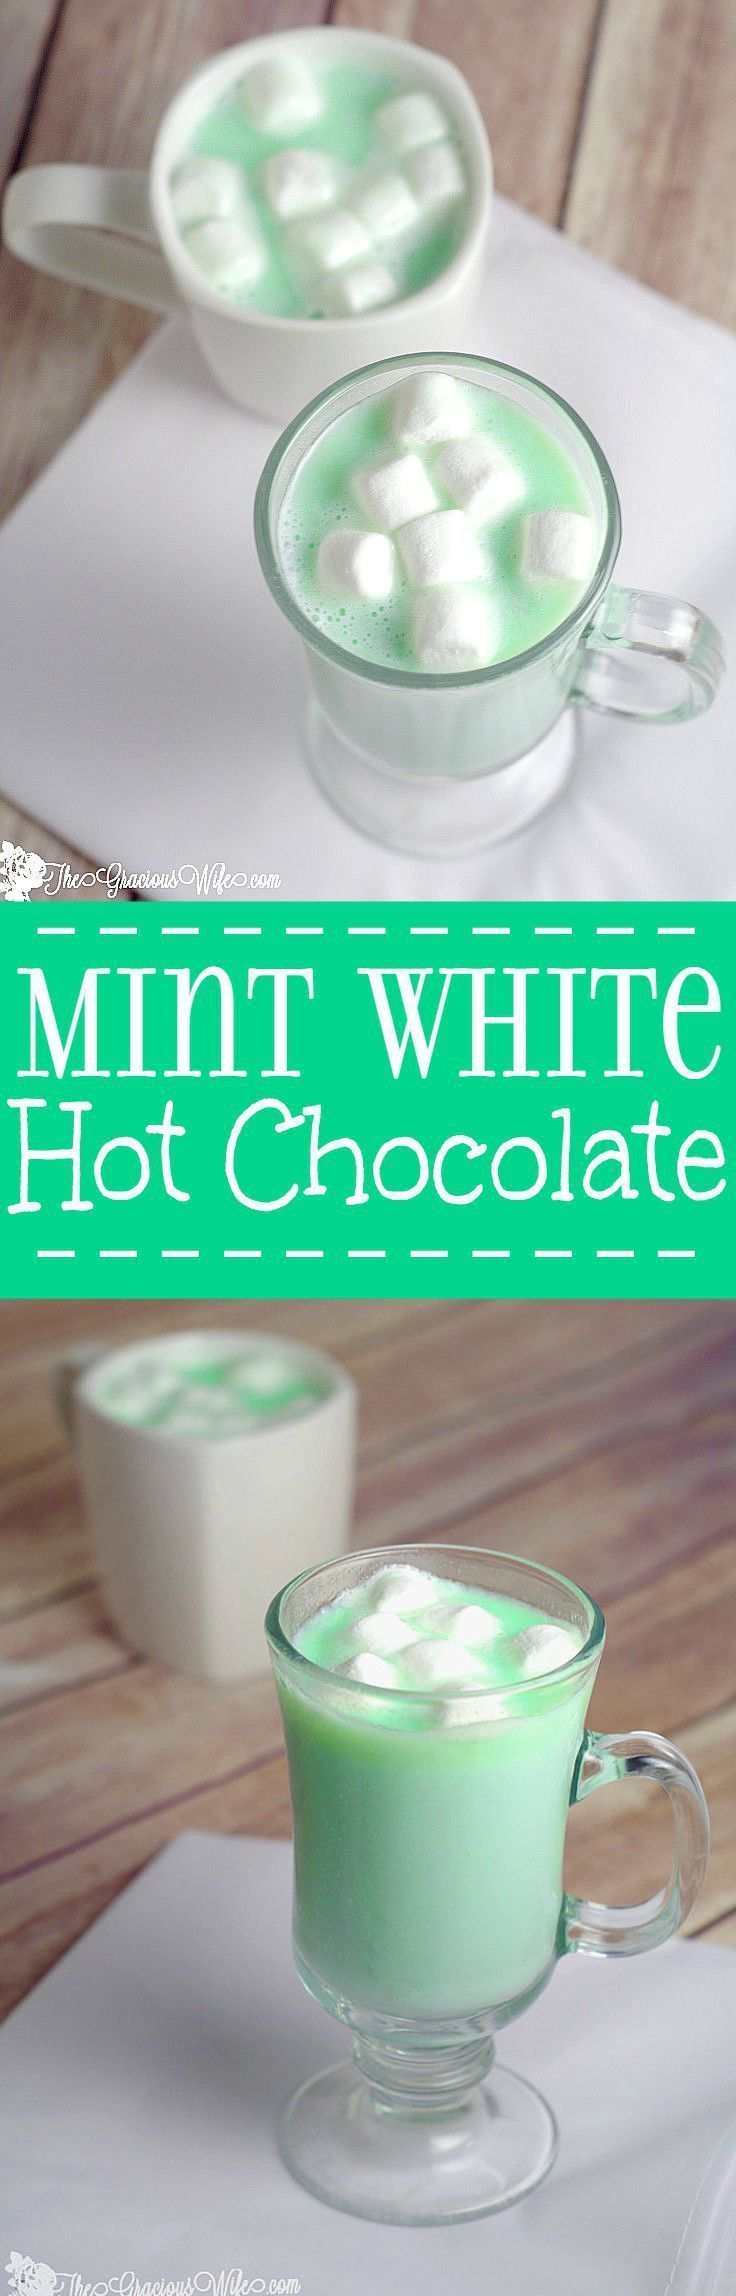 Homemade Mint White Hot Chocolate is a fast and easy homemade hot chocolate recipe made with white chocolate and mint!creamy, white chocolate with a burst of peppermint flavor to create a perfect decadent Christmas, winter, St. Patrick's Day, or holiday